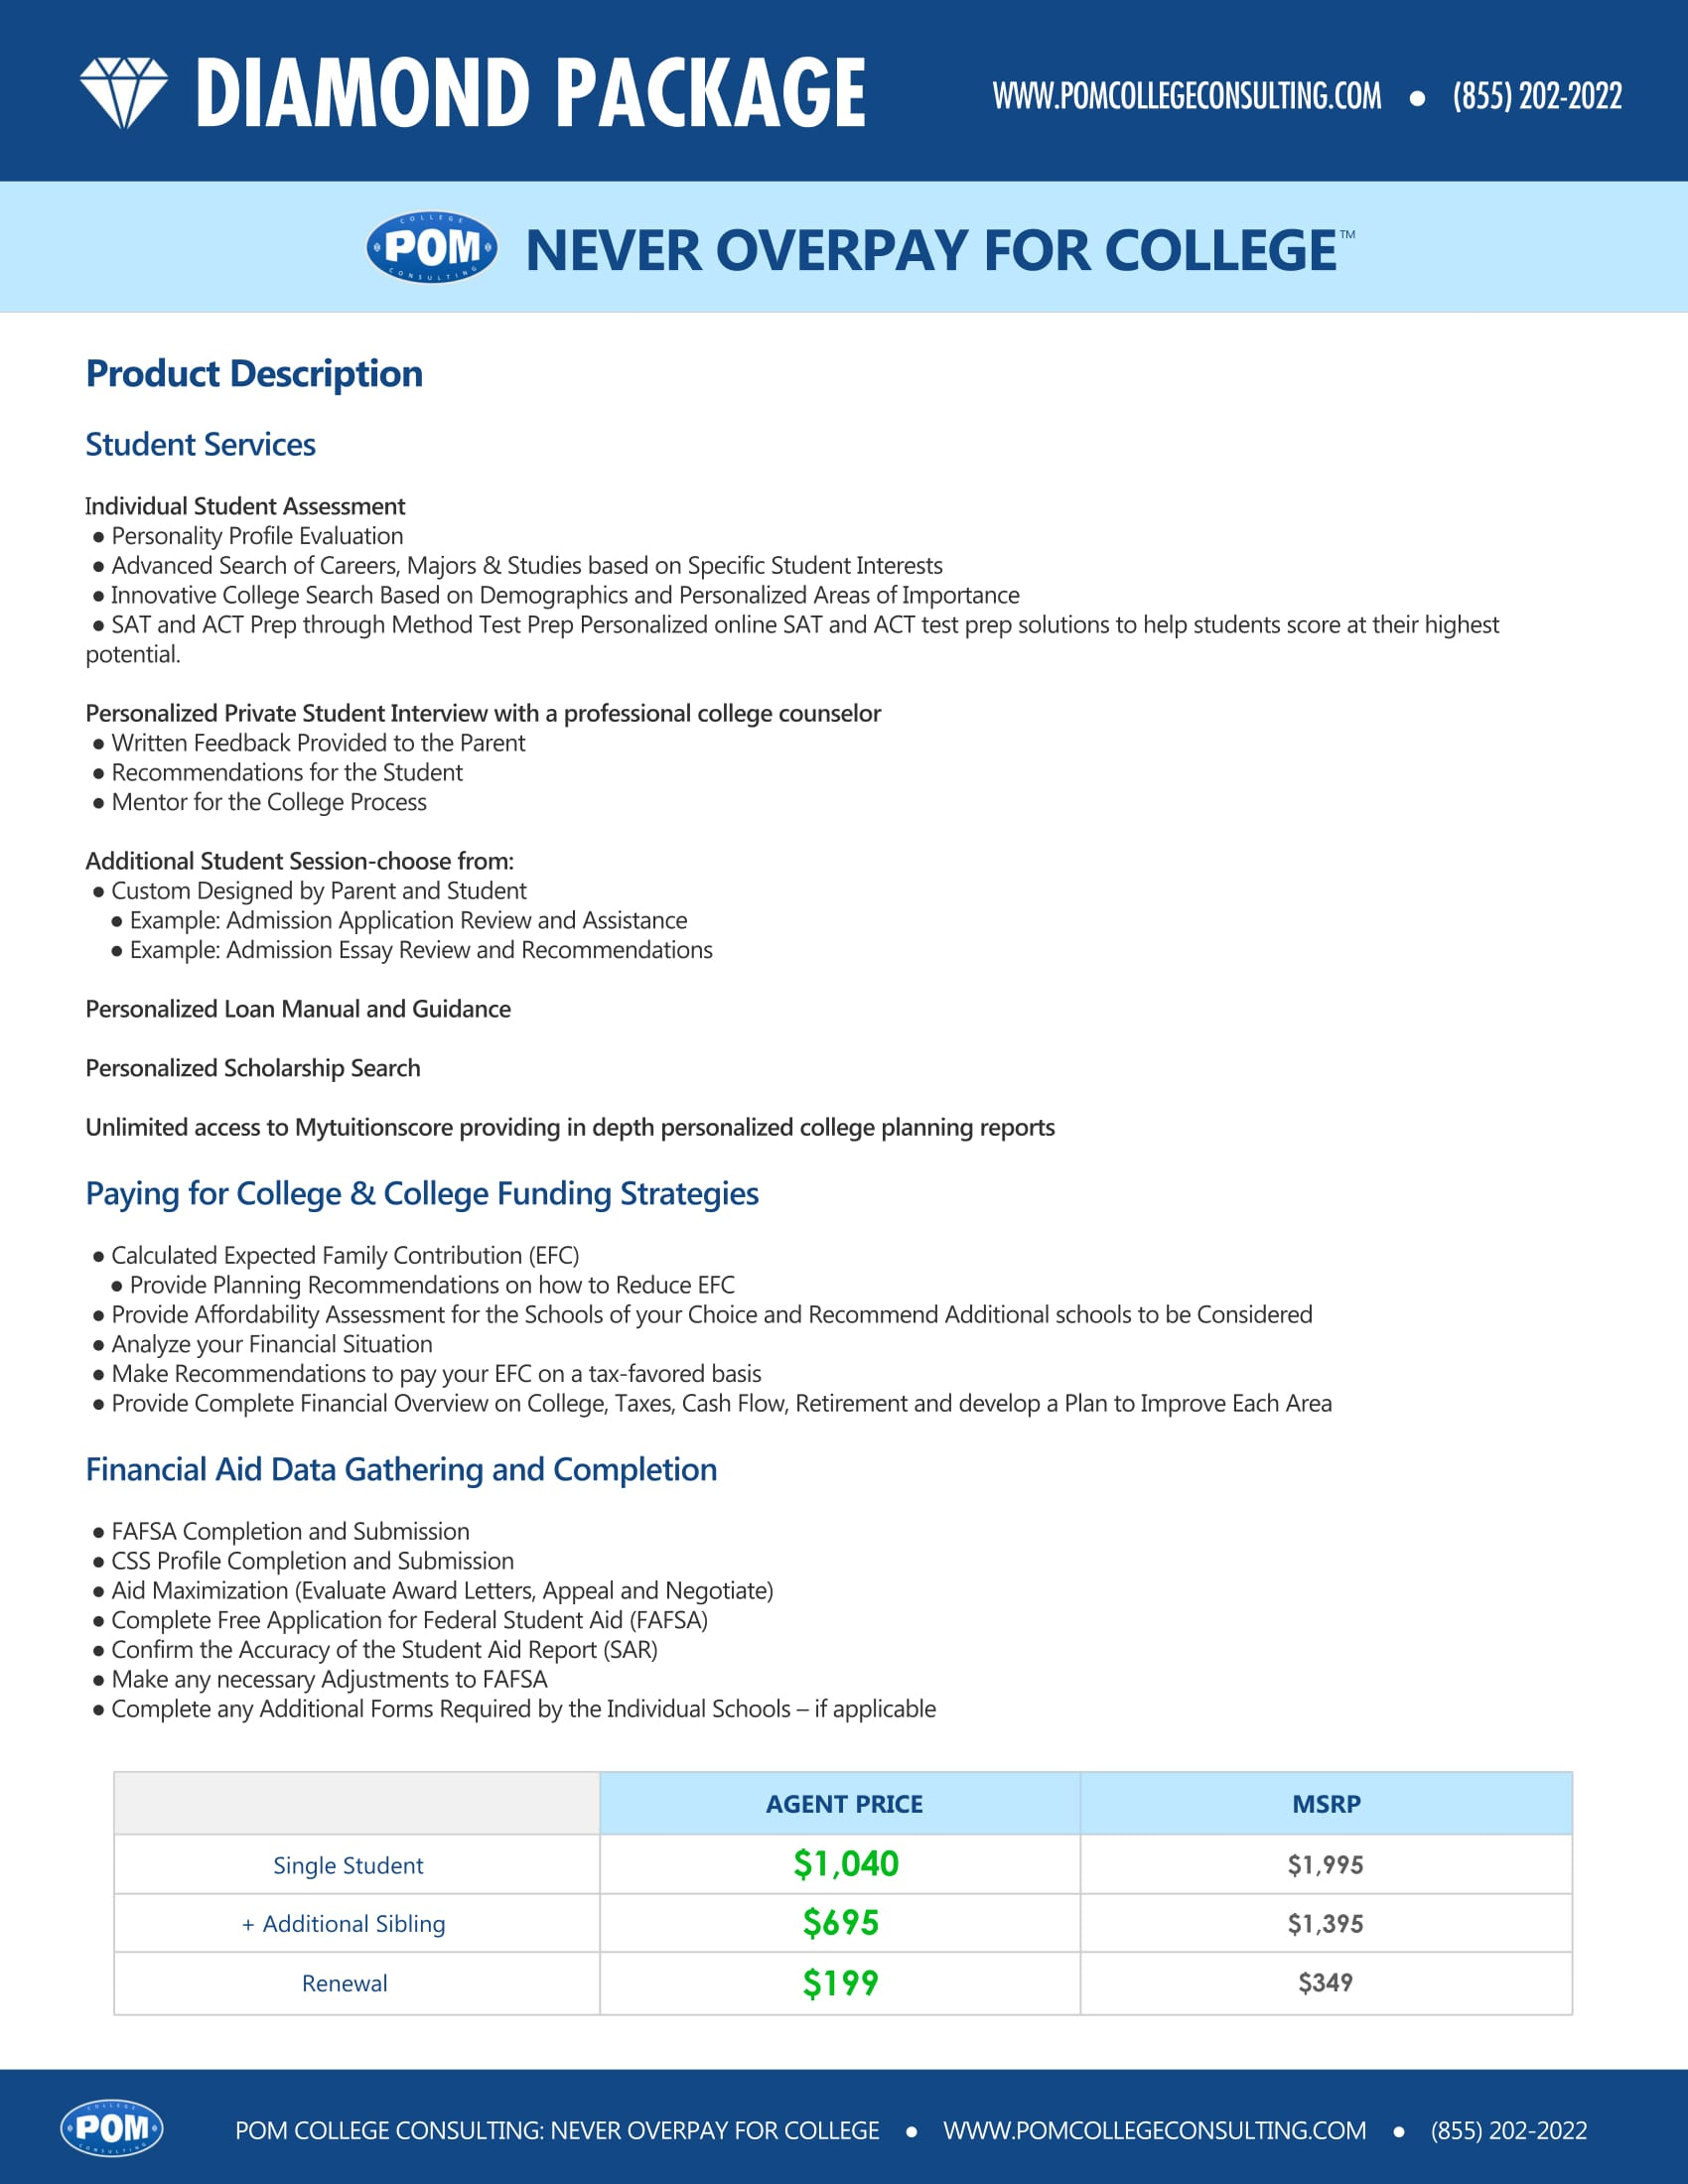 Diamond Package – Never Overpay for College